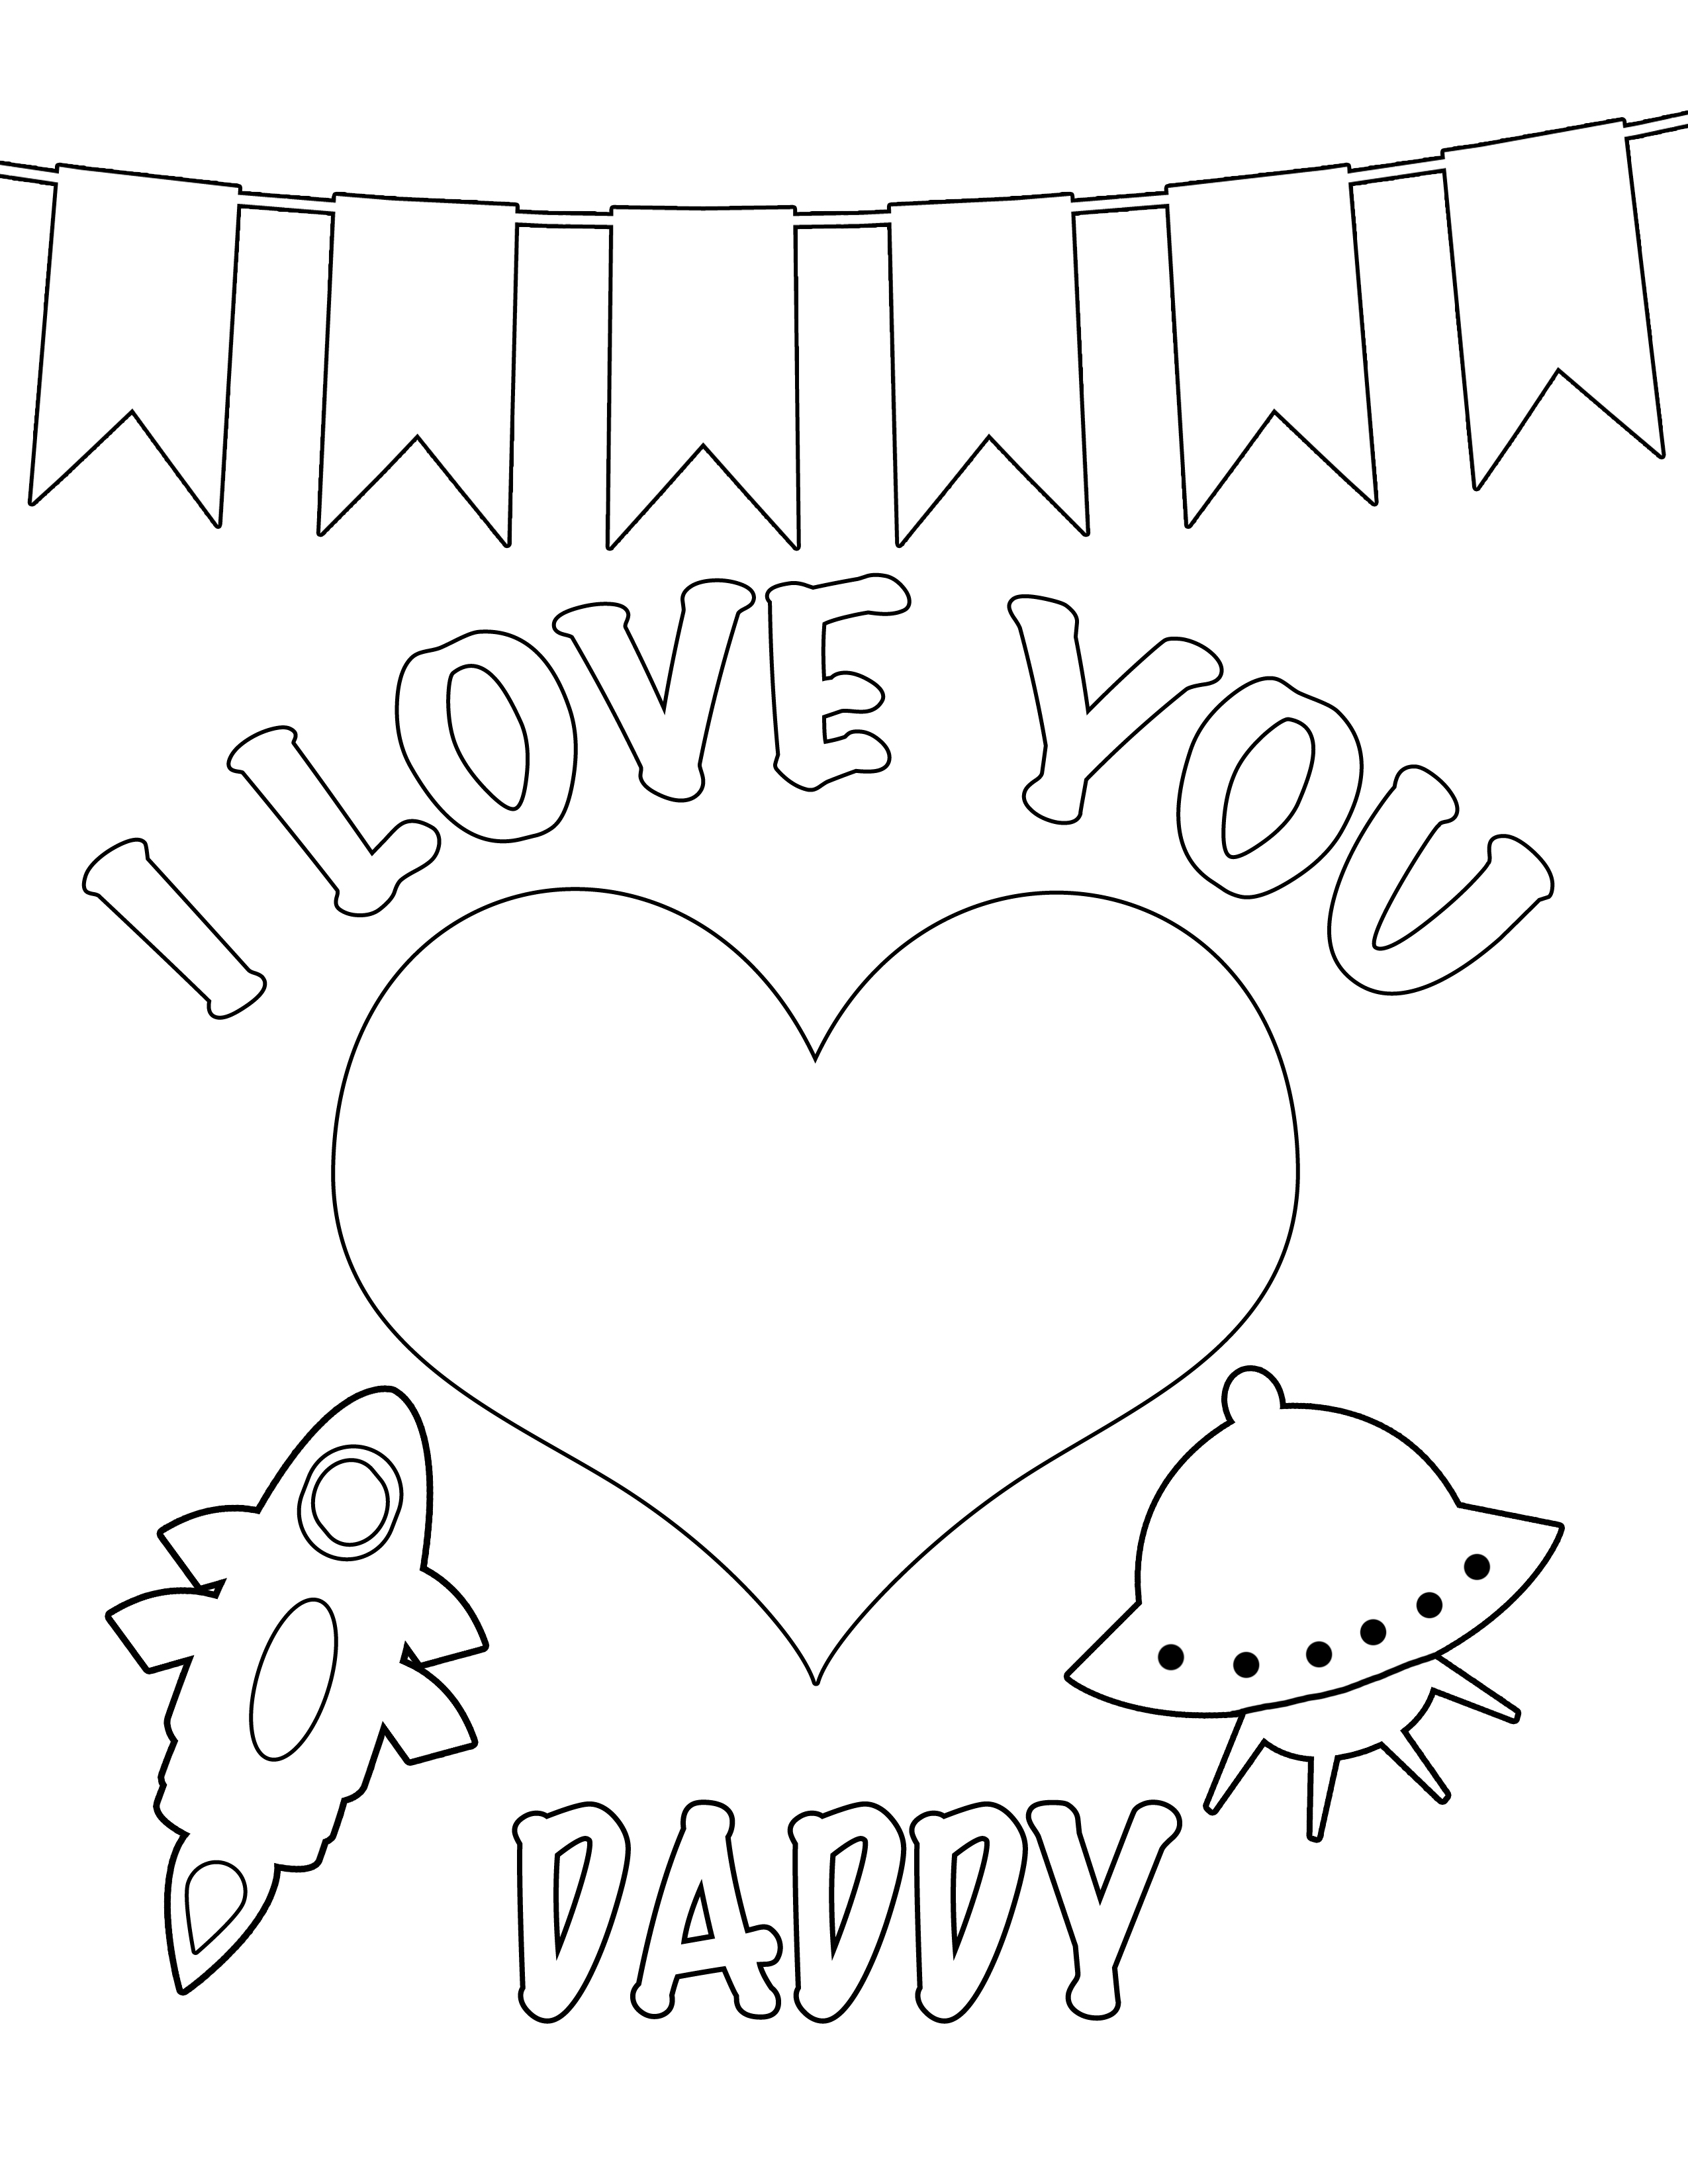 Coloring Pages ~ Outstanding Valentines Day Coloring Cards Free - Free Printable Valentines Day Cards For Mom And Dad